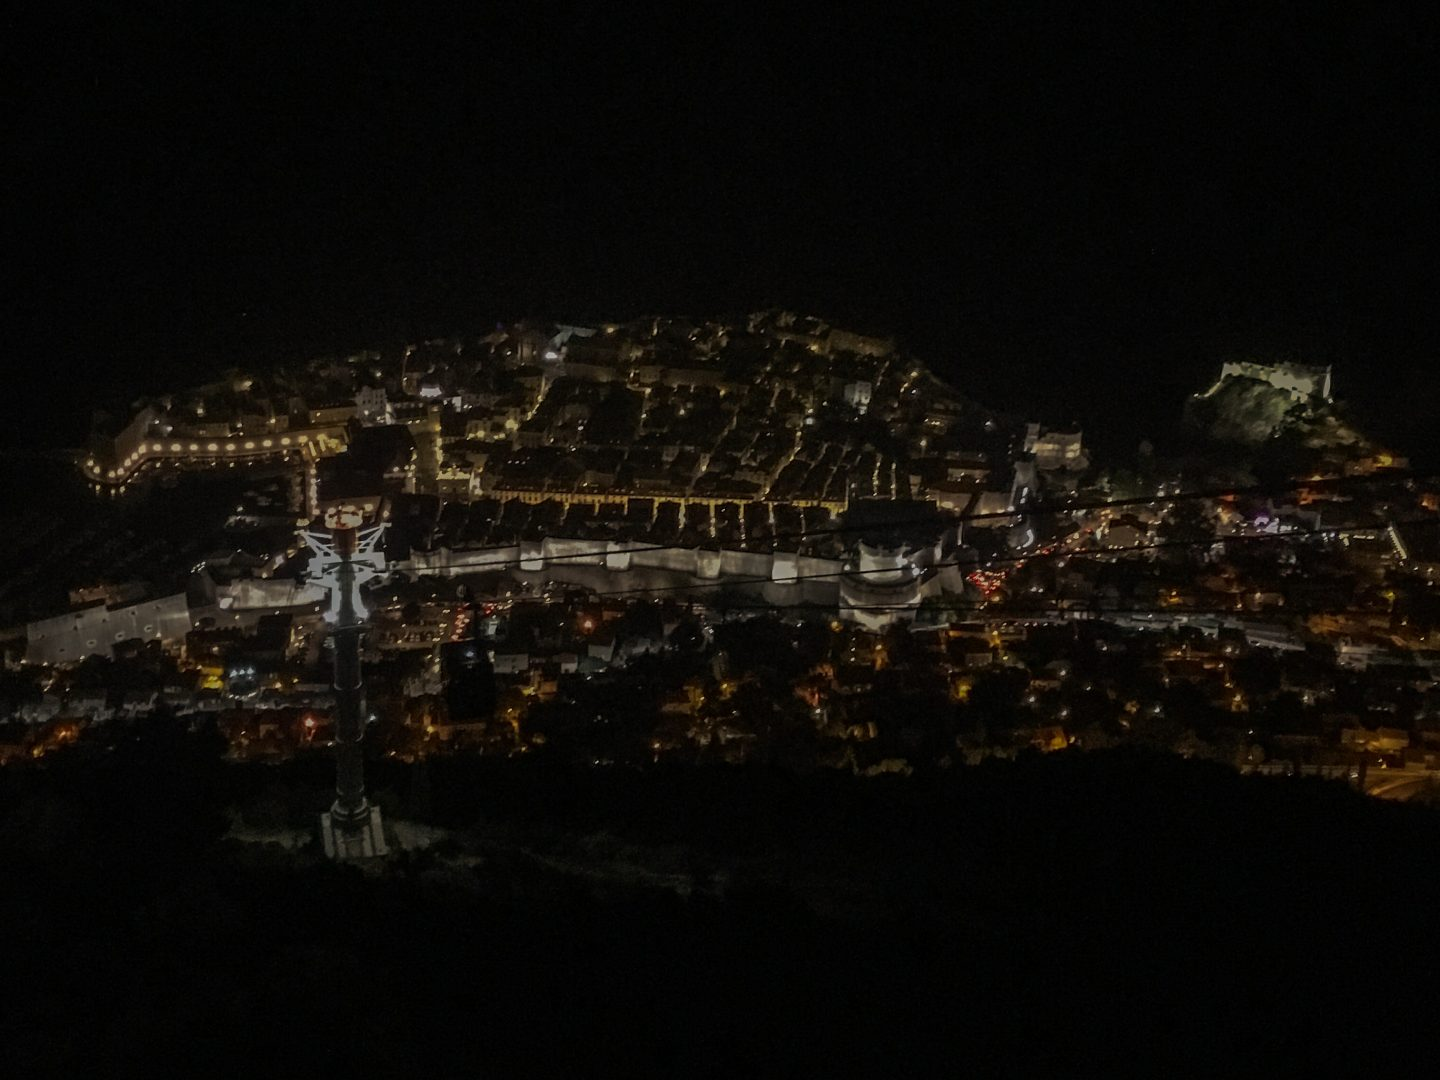 On thing to do in Dubrovnik is to view the city lights from Mount Srd